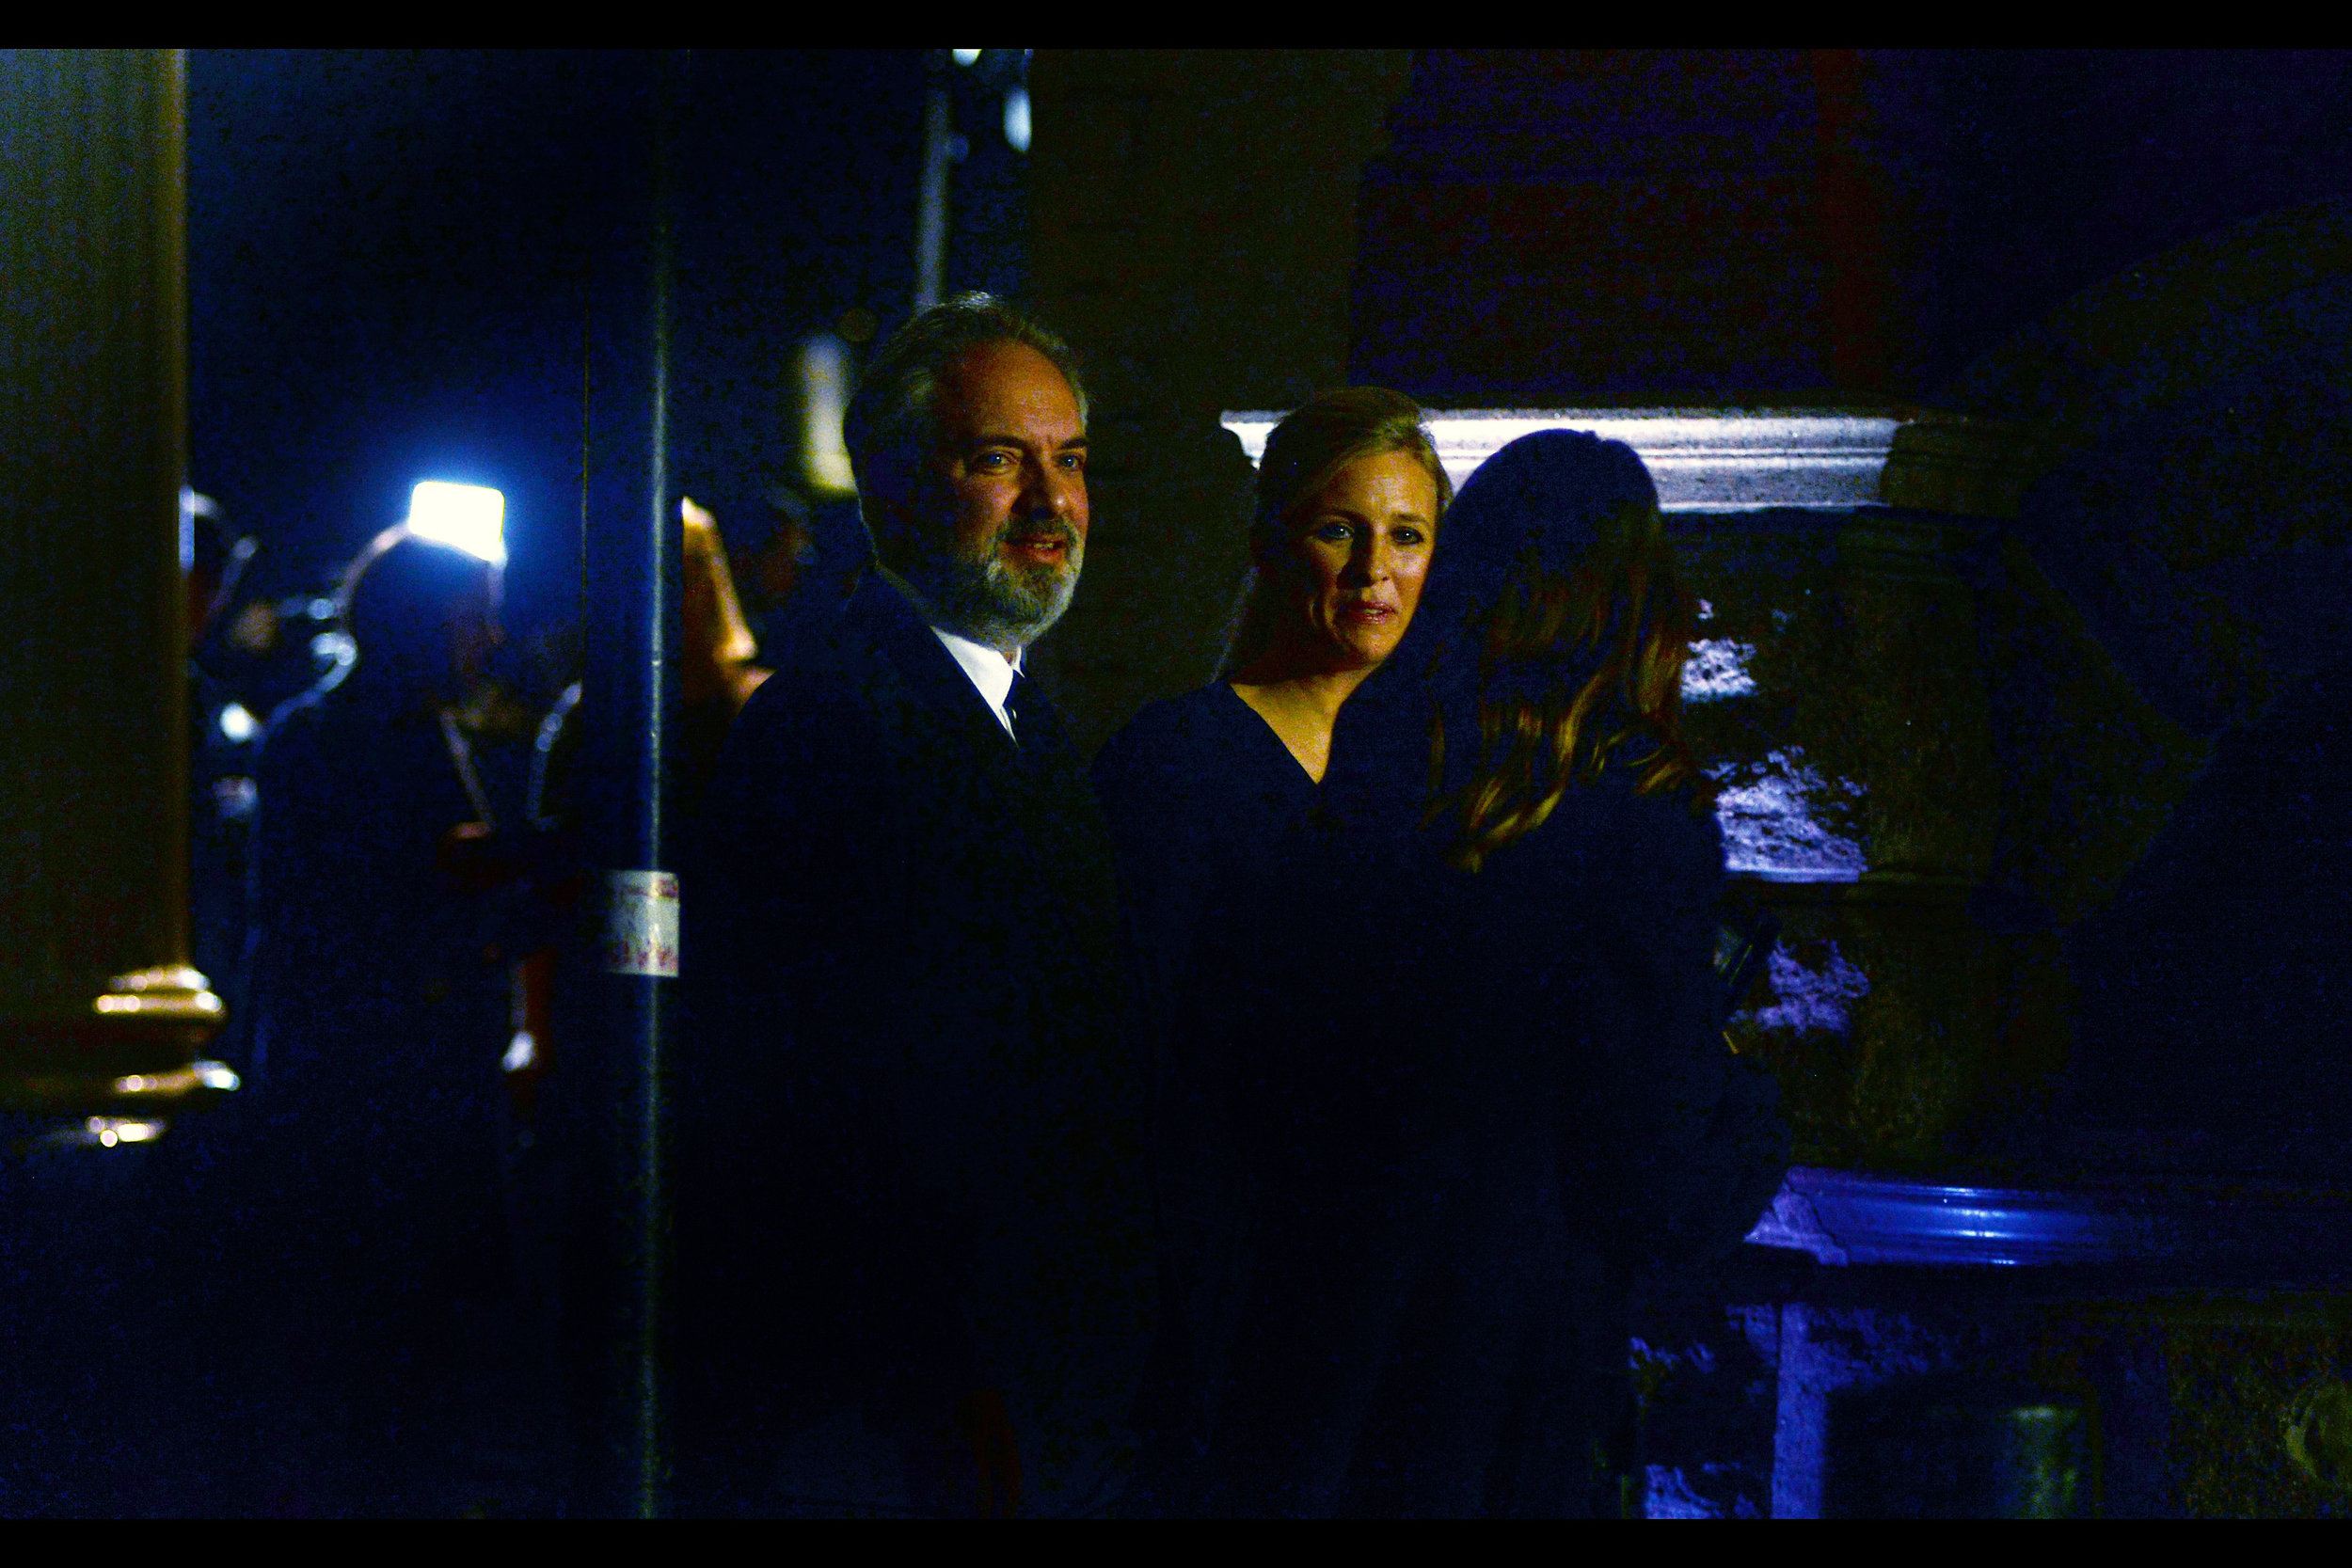 """Through the wonders of highlight-extraction on a full-frame Nikon I can now proclaim to have photographed Director Sam Mendes (who won on the night for """"The Ferryman"""" but also directed the James Bond films   """"Skyfall""""   and   """"Spectre""""  )"""